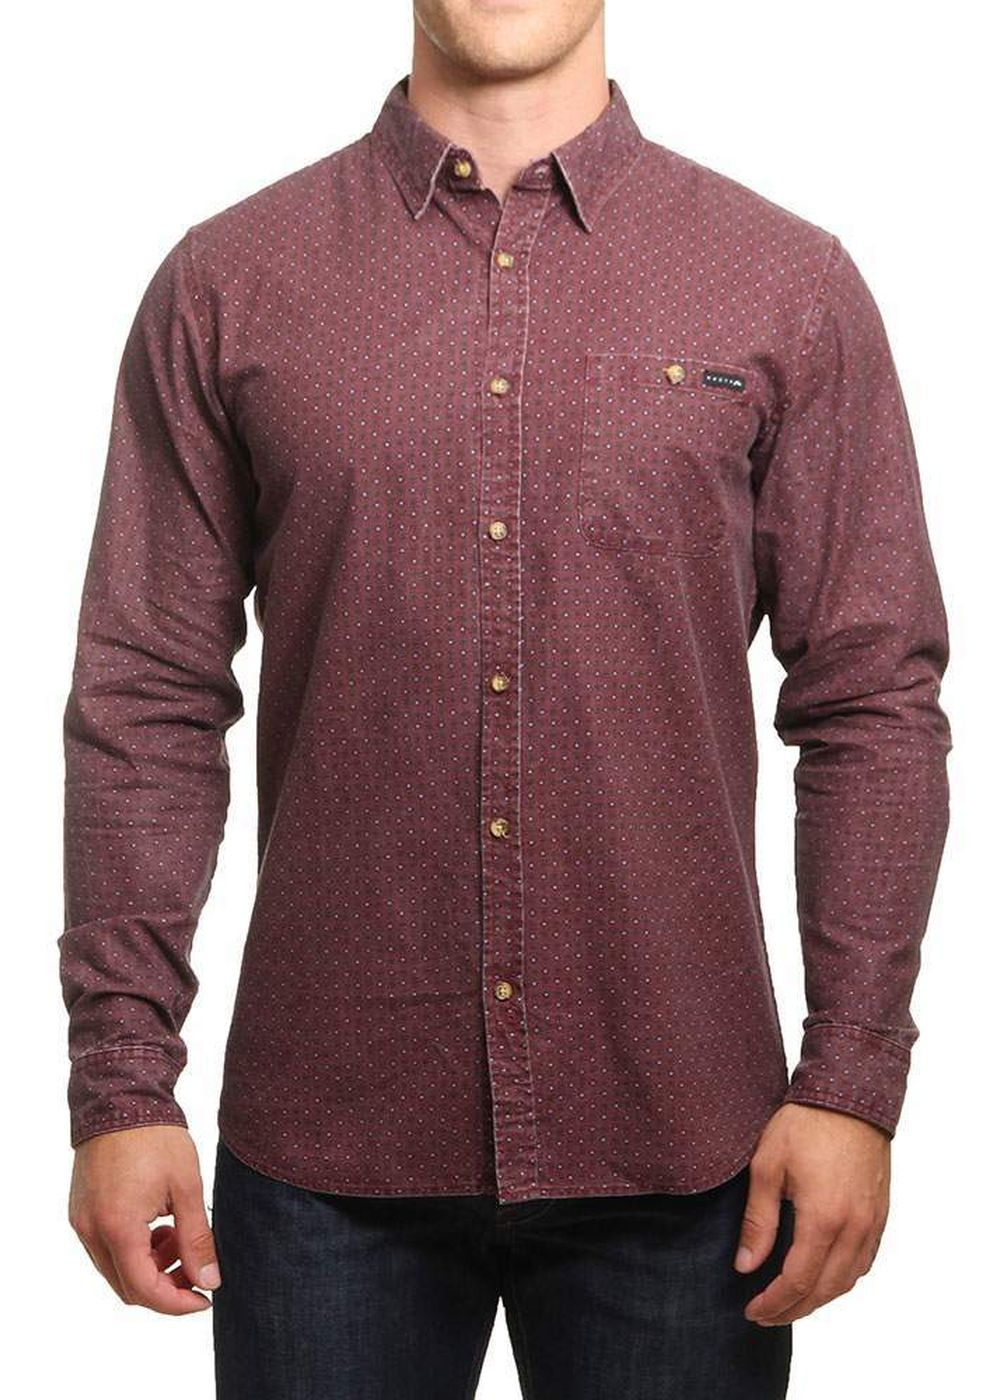 rusty-mobbed-shirt-port